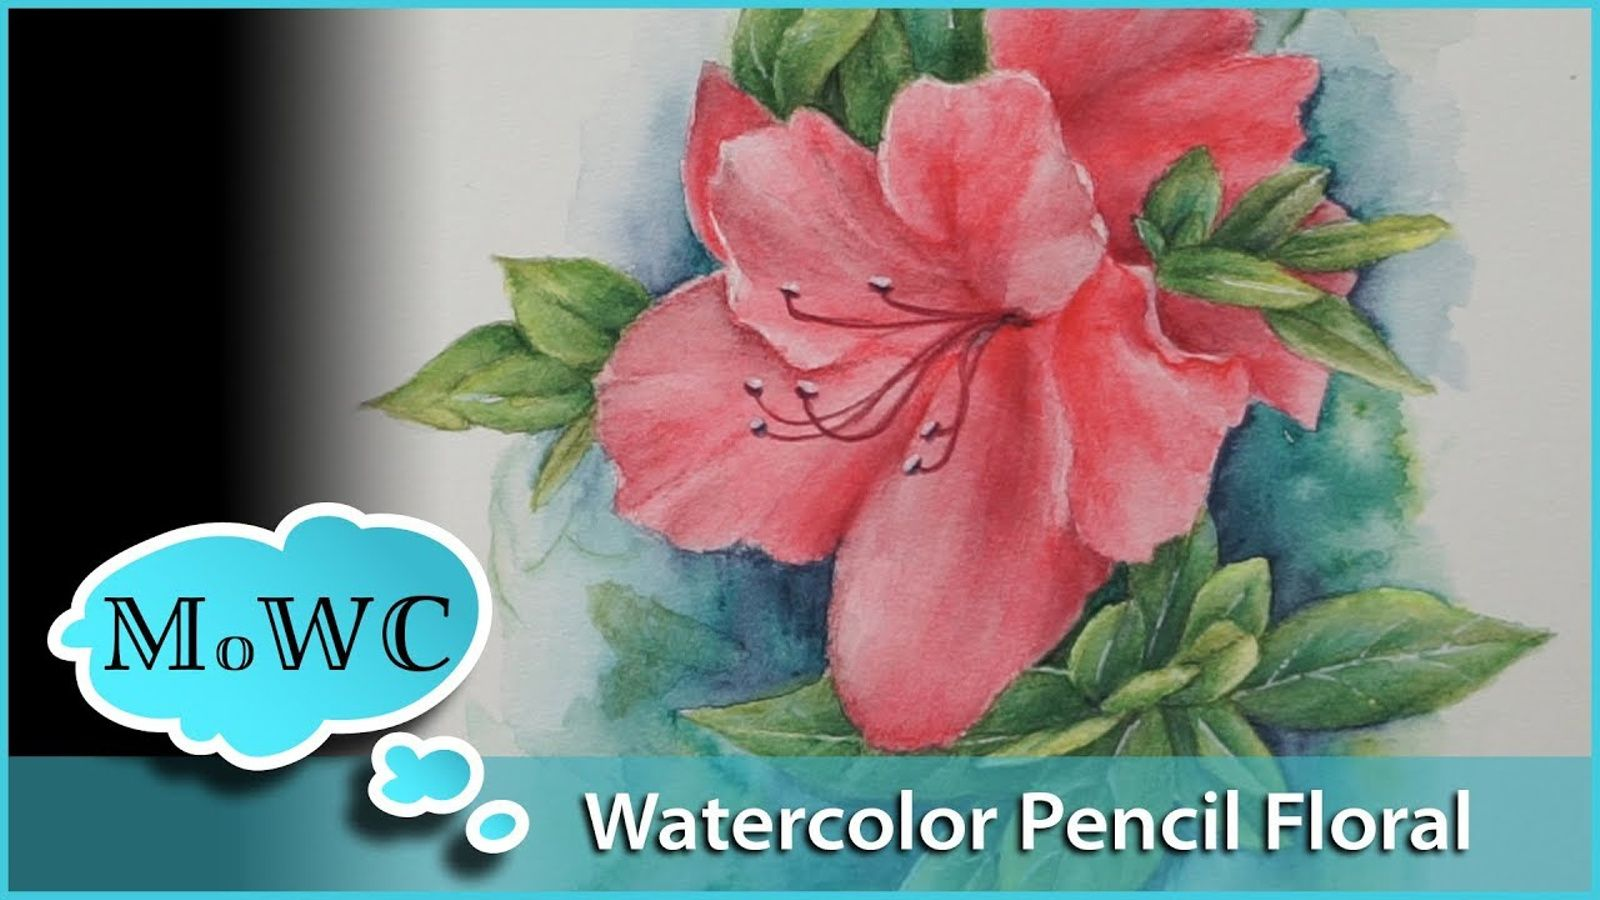 Using Watercolor Pencils To Paint An Azalea Floral Patron Preview